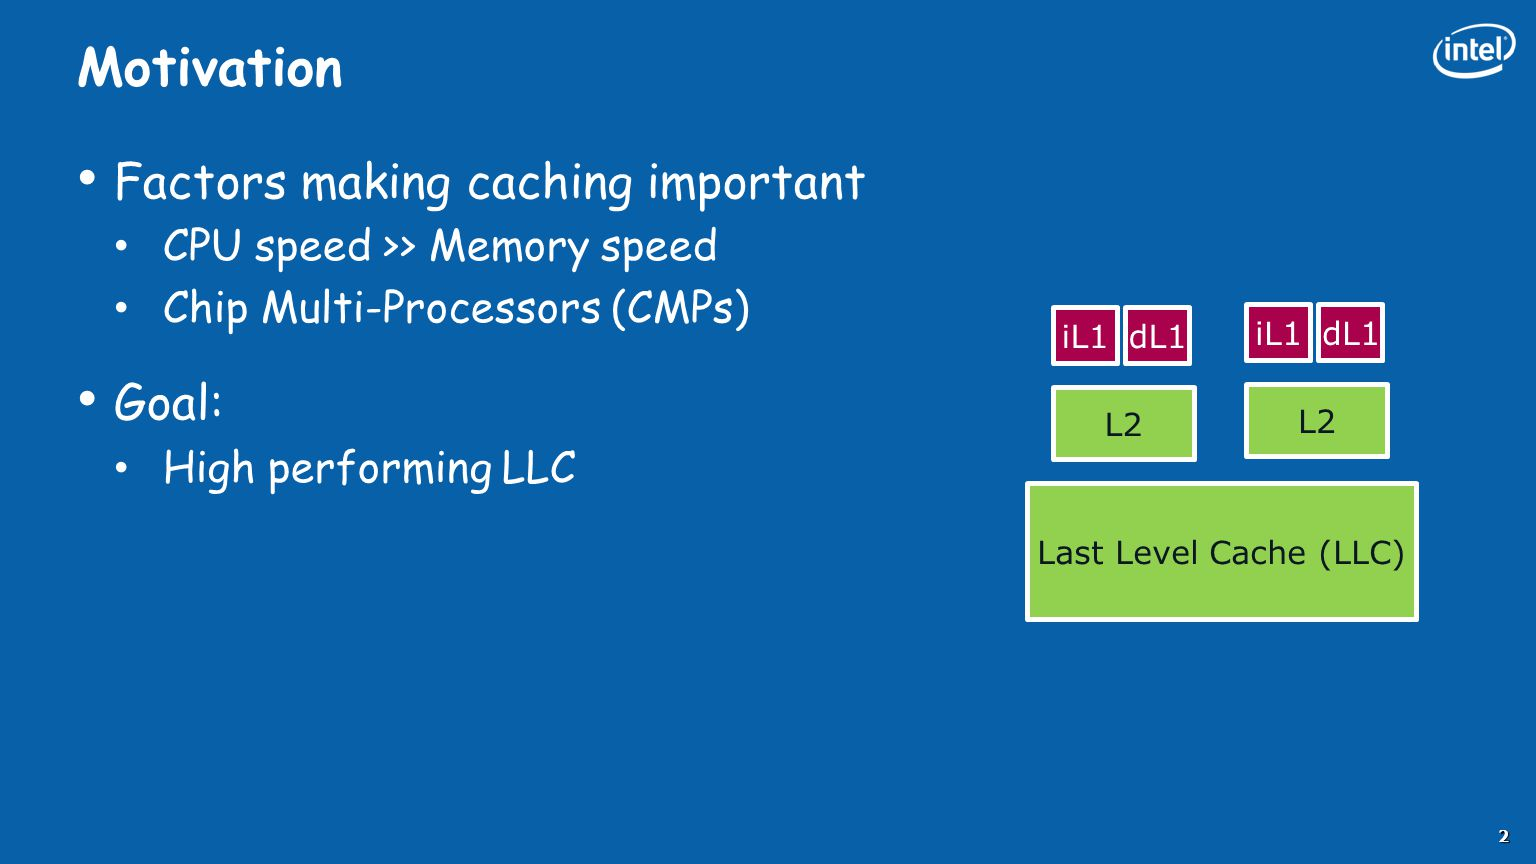 Motivation Factors making caching important CPU speed >> Memory speed Chip Multi-Processors (CMPs) Goal: High performing LLC High performing cache hierarchy 3 iL1dL1 L2 iL1dL1 L2 Last Level Cache (LLC) Focus Of This Talk Is to Design a High Performing Cache Hierarchy